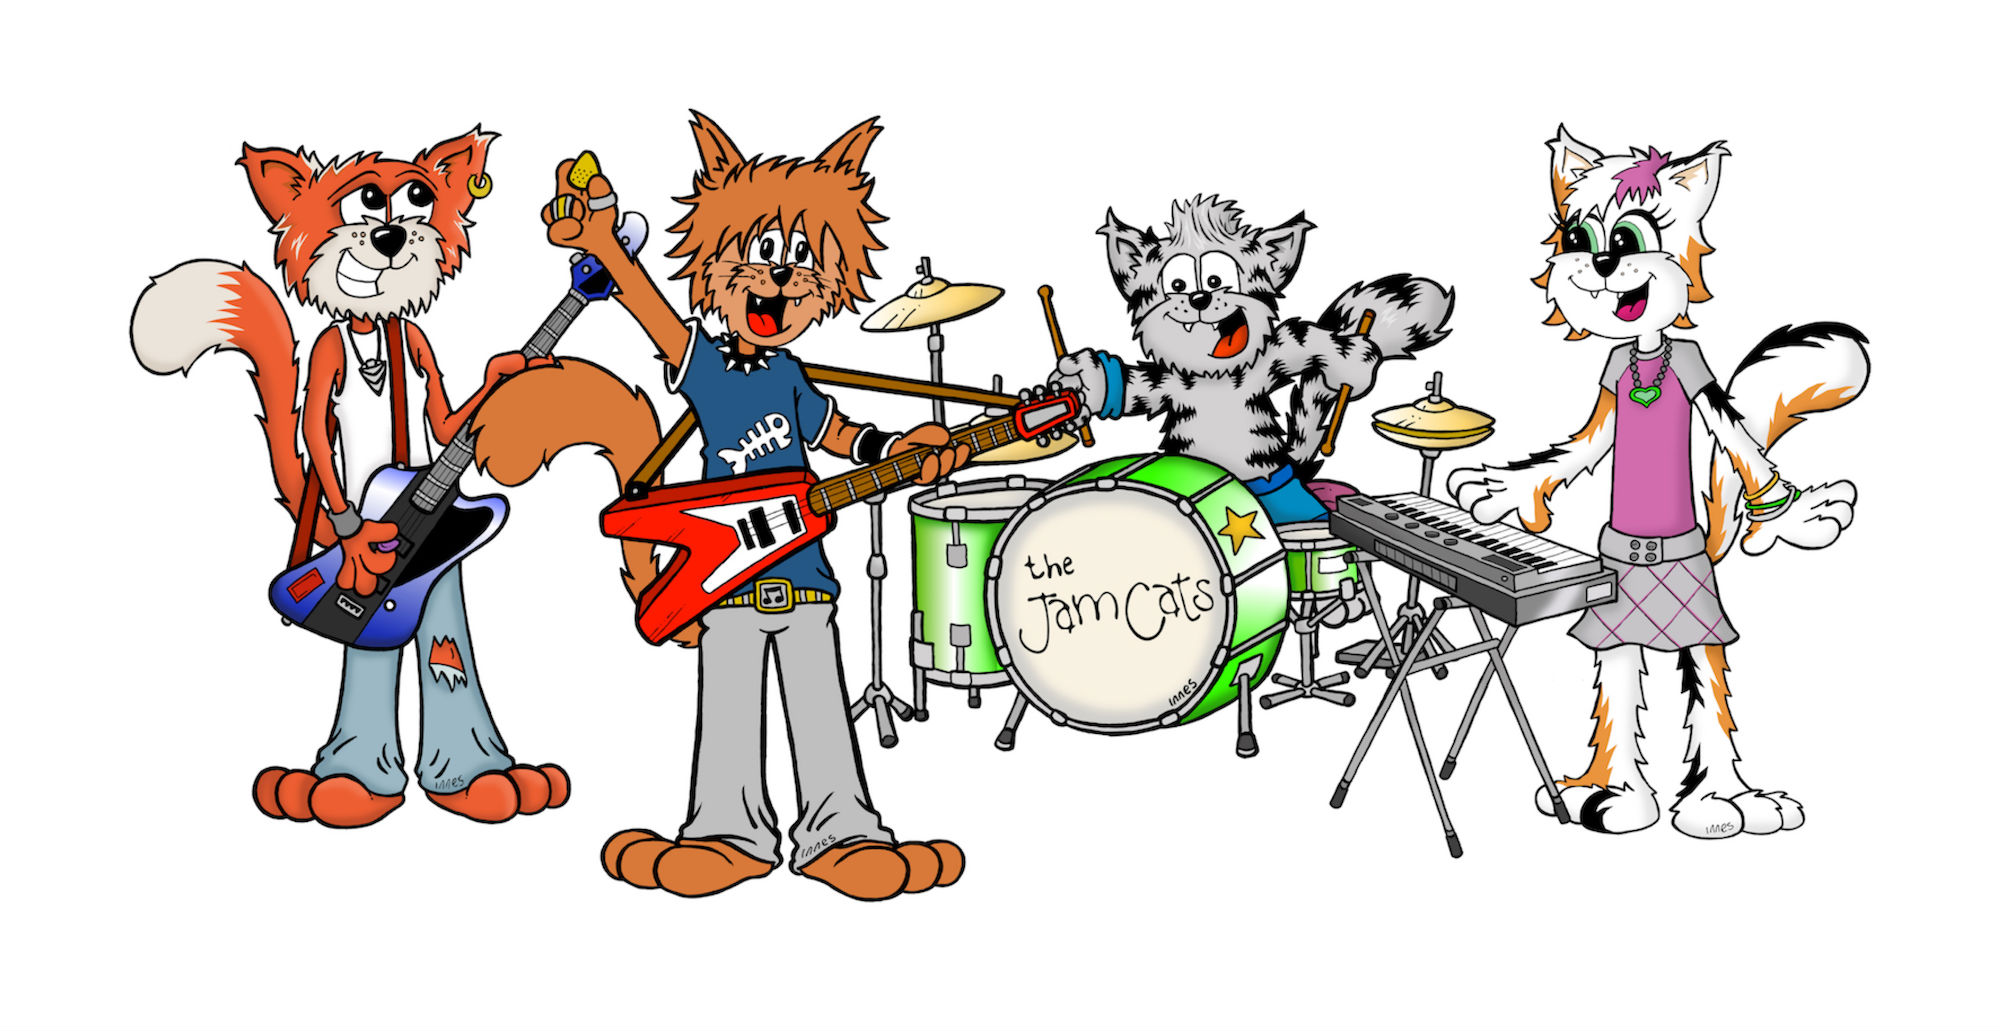 The Jam Cats Music Band